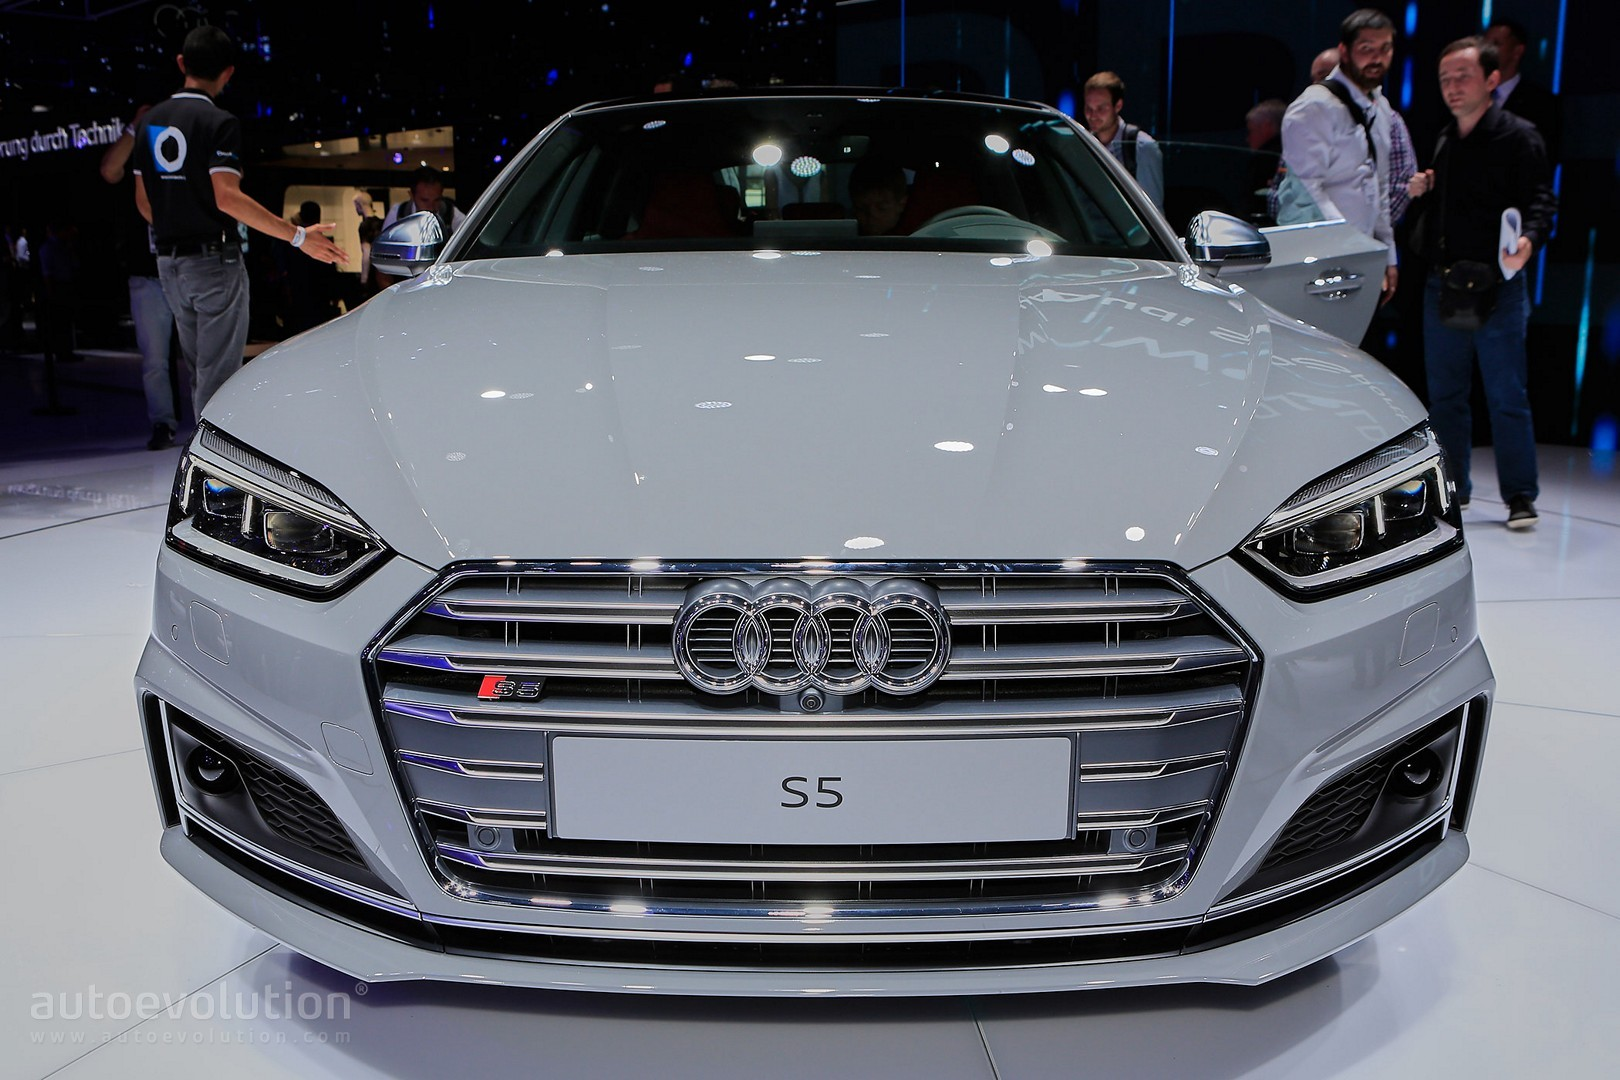 2017 Audi S5 Sportback Looks Like a Shark Thanks to Nardo Gray Paint - autoevolution